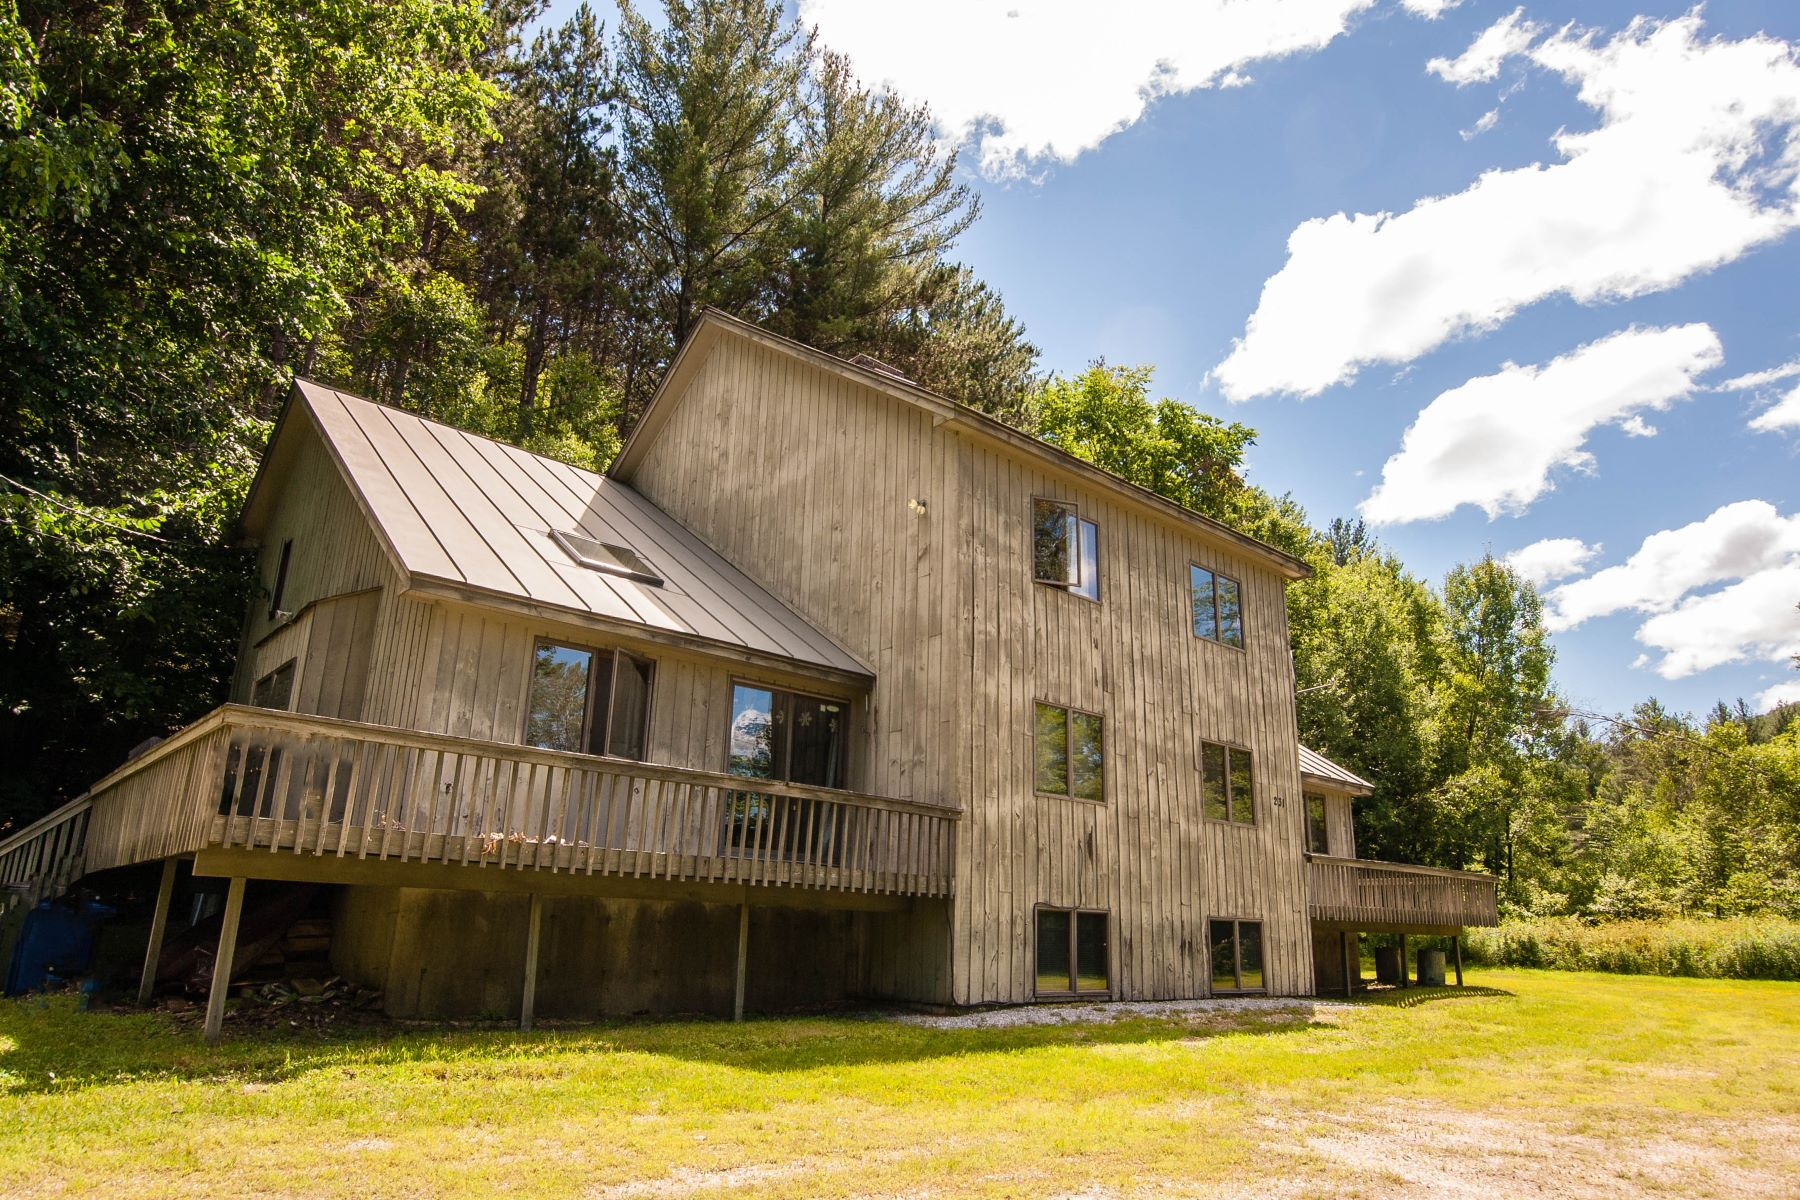 Multi-Family Home for Sale at Investment Property Opportunity 231 South Hill Rd Pittsfield, Vermont 05762 United States